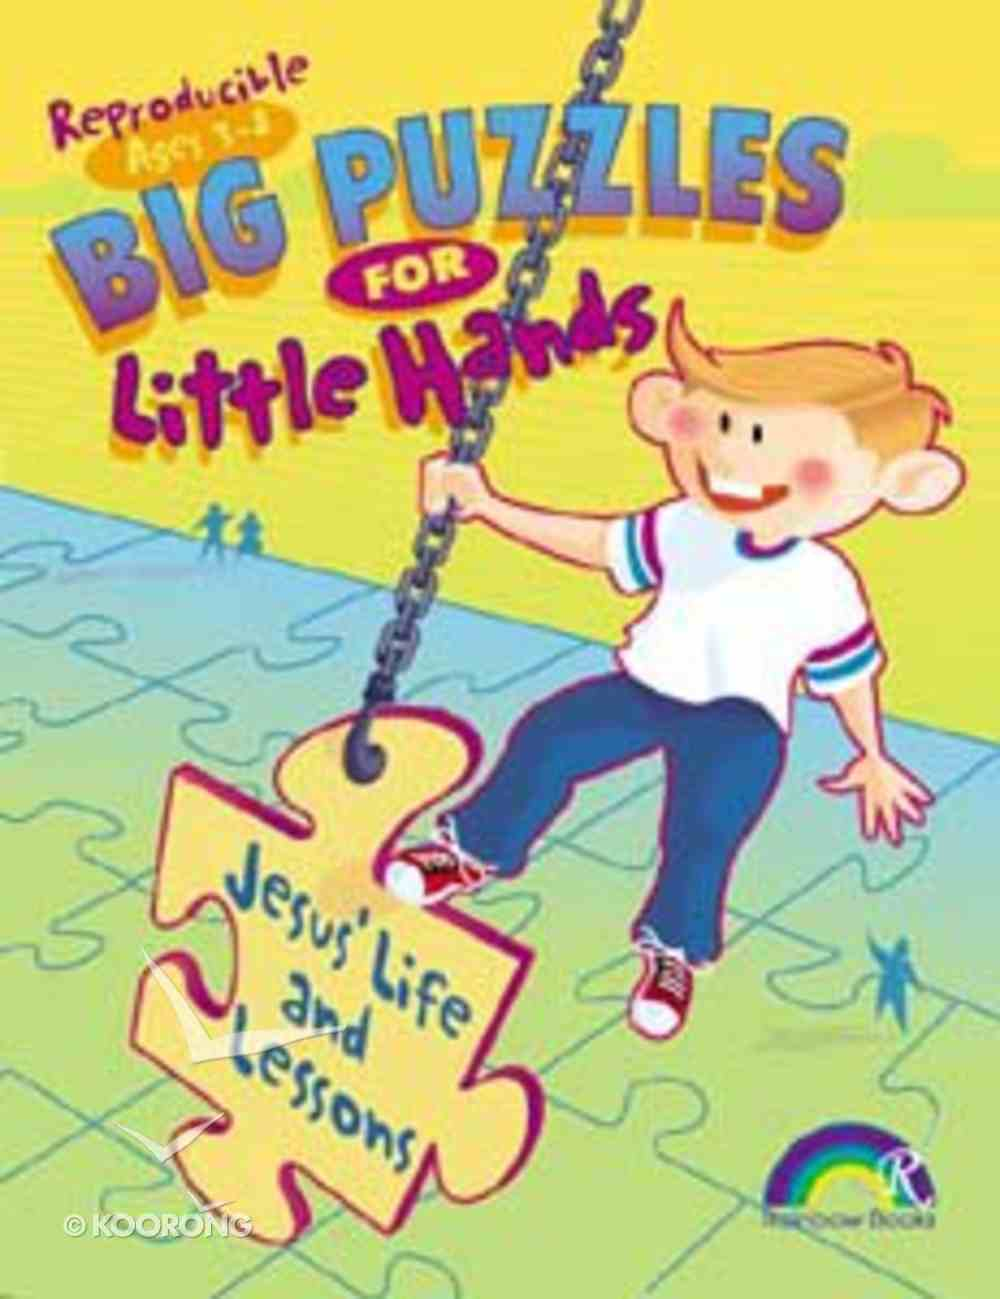 Big Puzzles For Little Hands: Jesus' Life and Lessons (Reproducible) Paperback